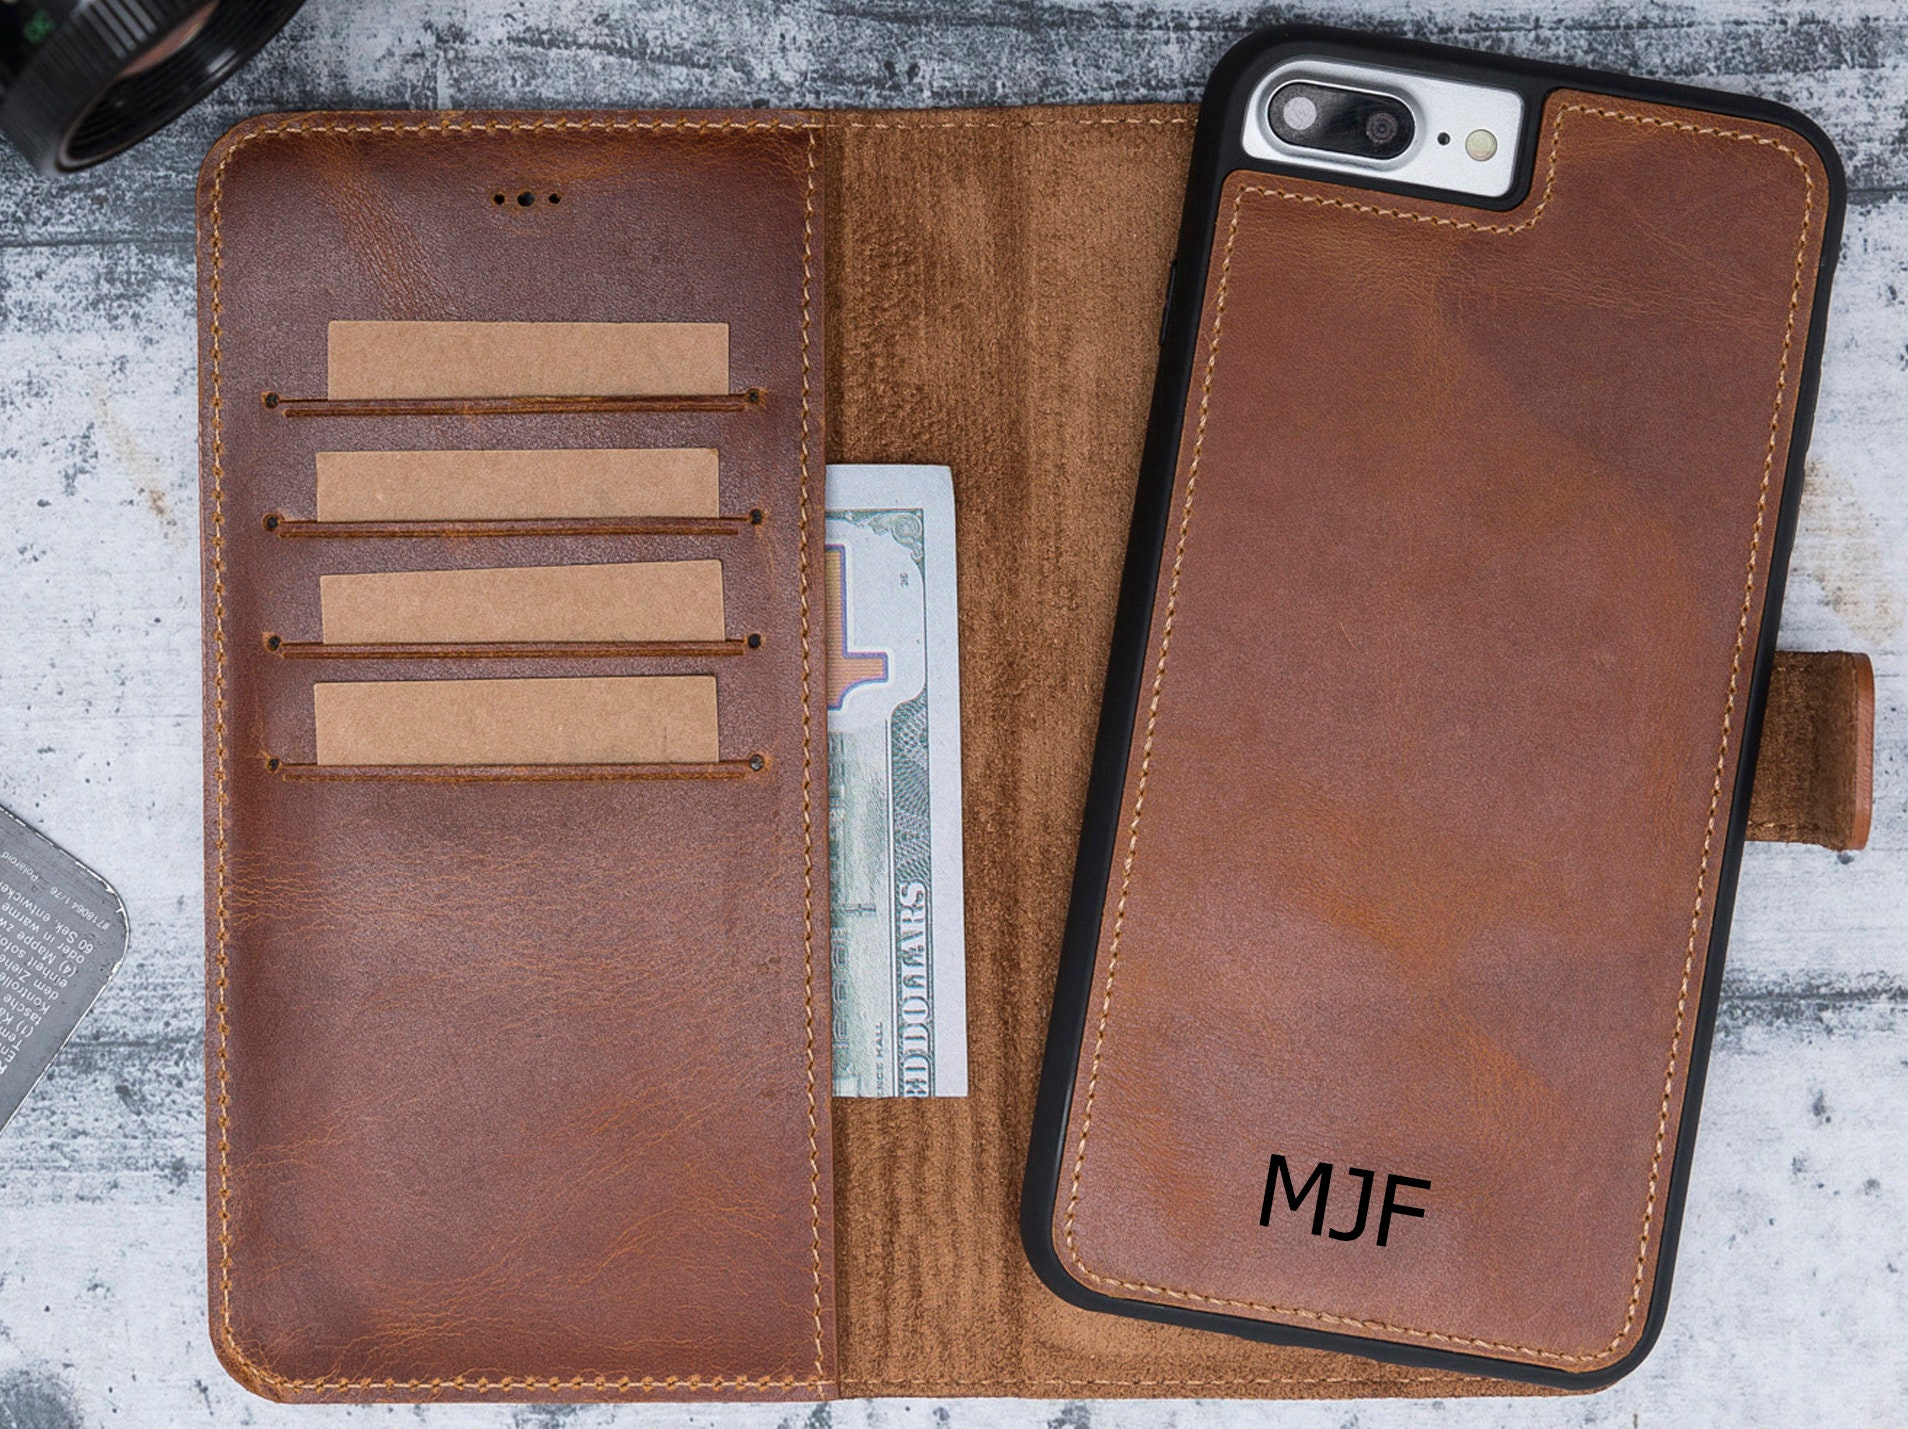 huge selection of 6c6d1 07d25 iPhone 7 Plus Wallet Case, Genuine Leather, iPhone 7 Plus Magic Wallet Case  with Card Holder, iphone 7 Plus Case, Valentines Day